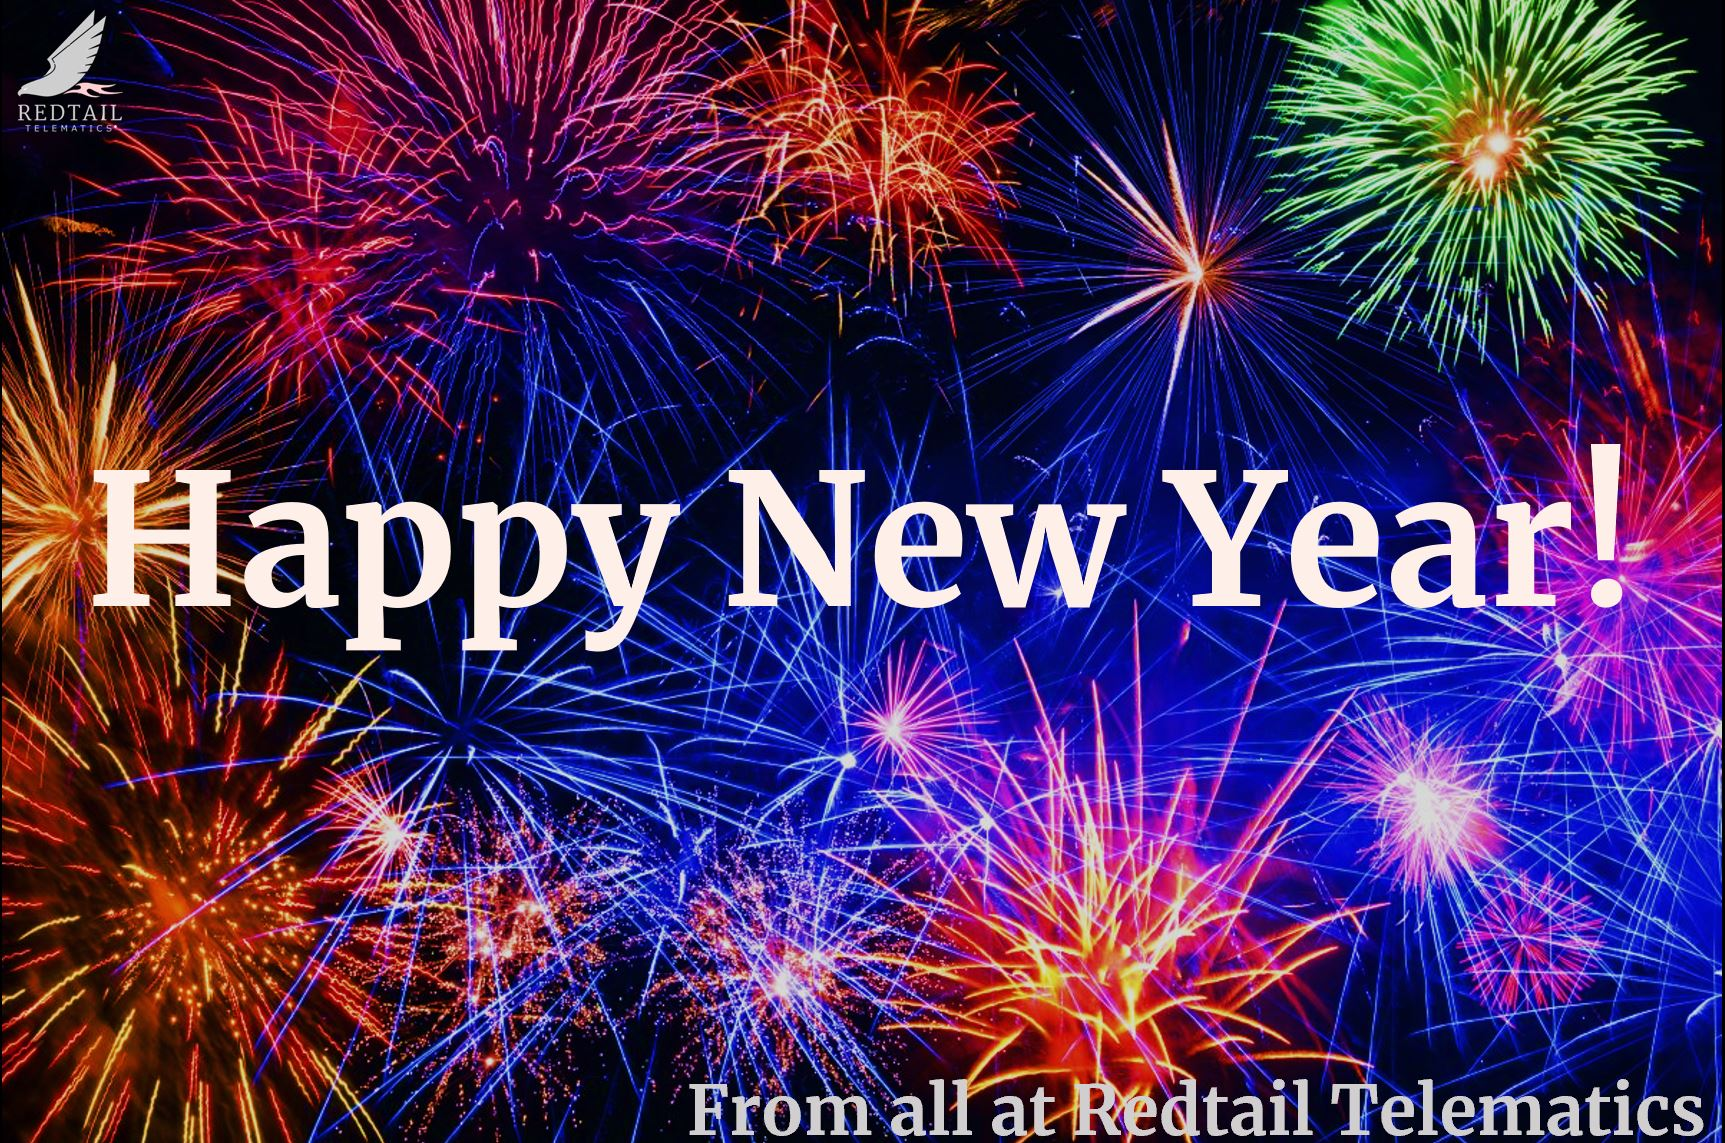 Happy New Year 2021 from Redtail Telematics!